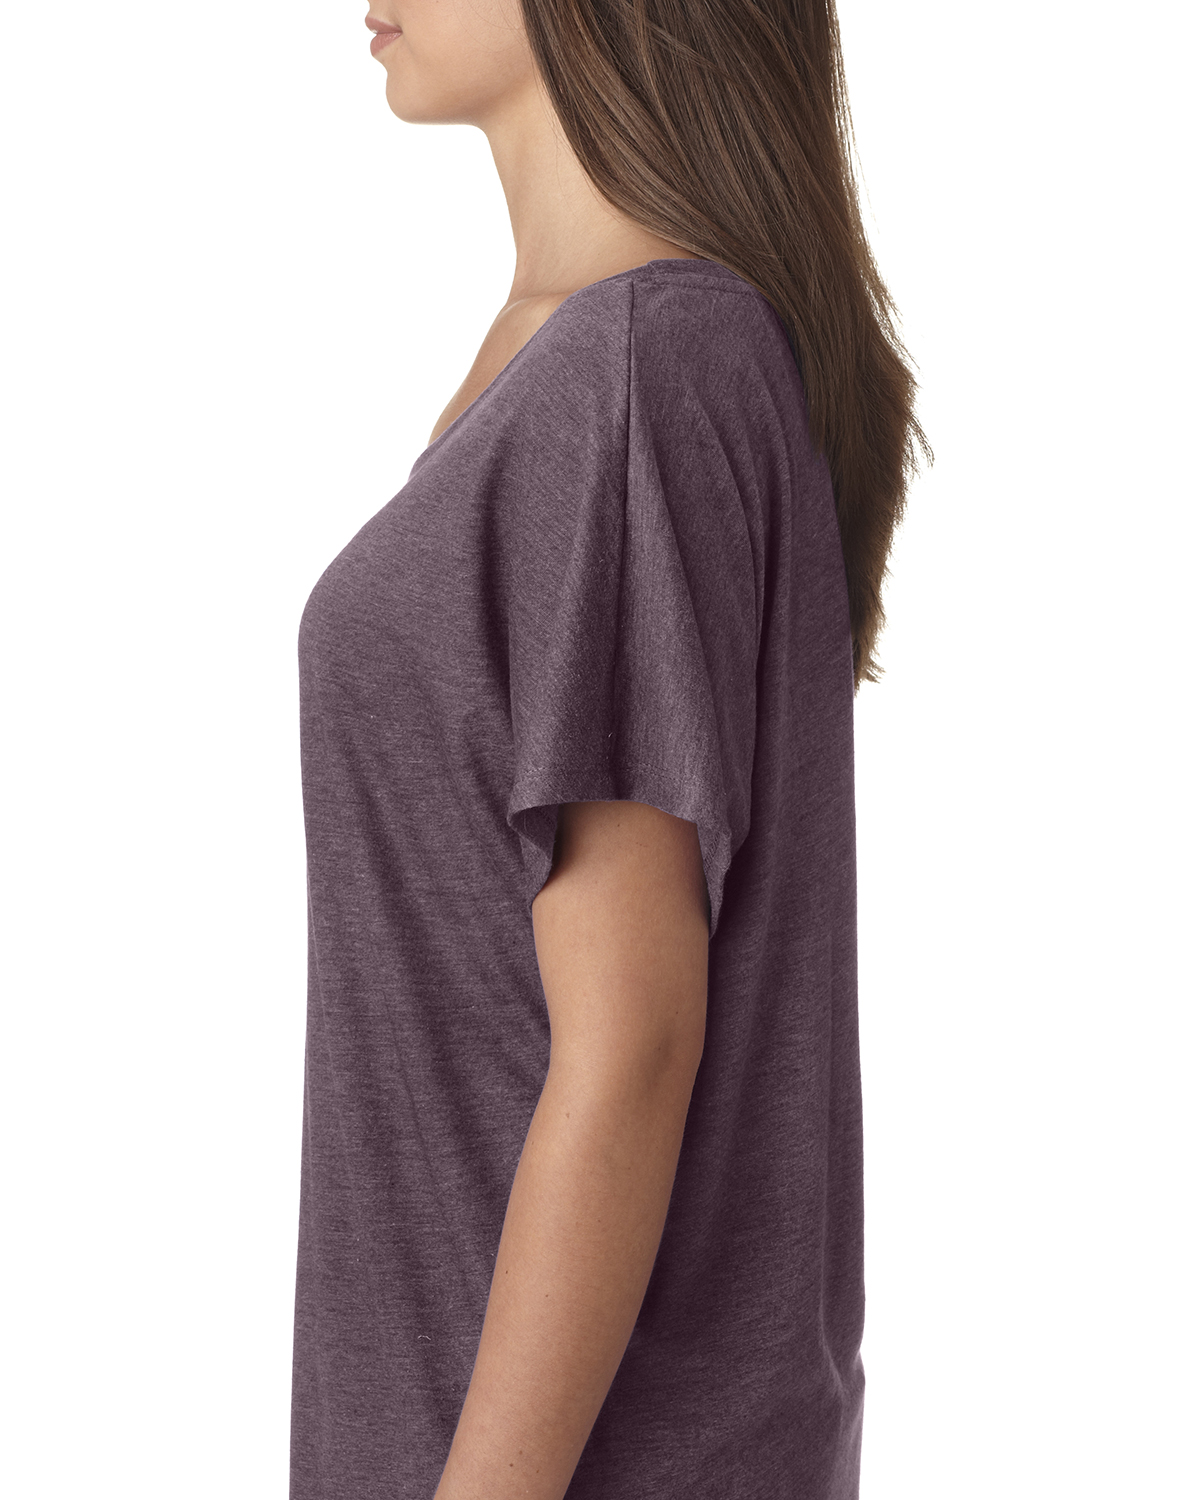 NEW-Next-Level-Junior-Fit-Triblend-Dolman-Sleeve-Relexed-Fit-T-Shirt-B-6760 thumbnail 37